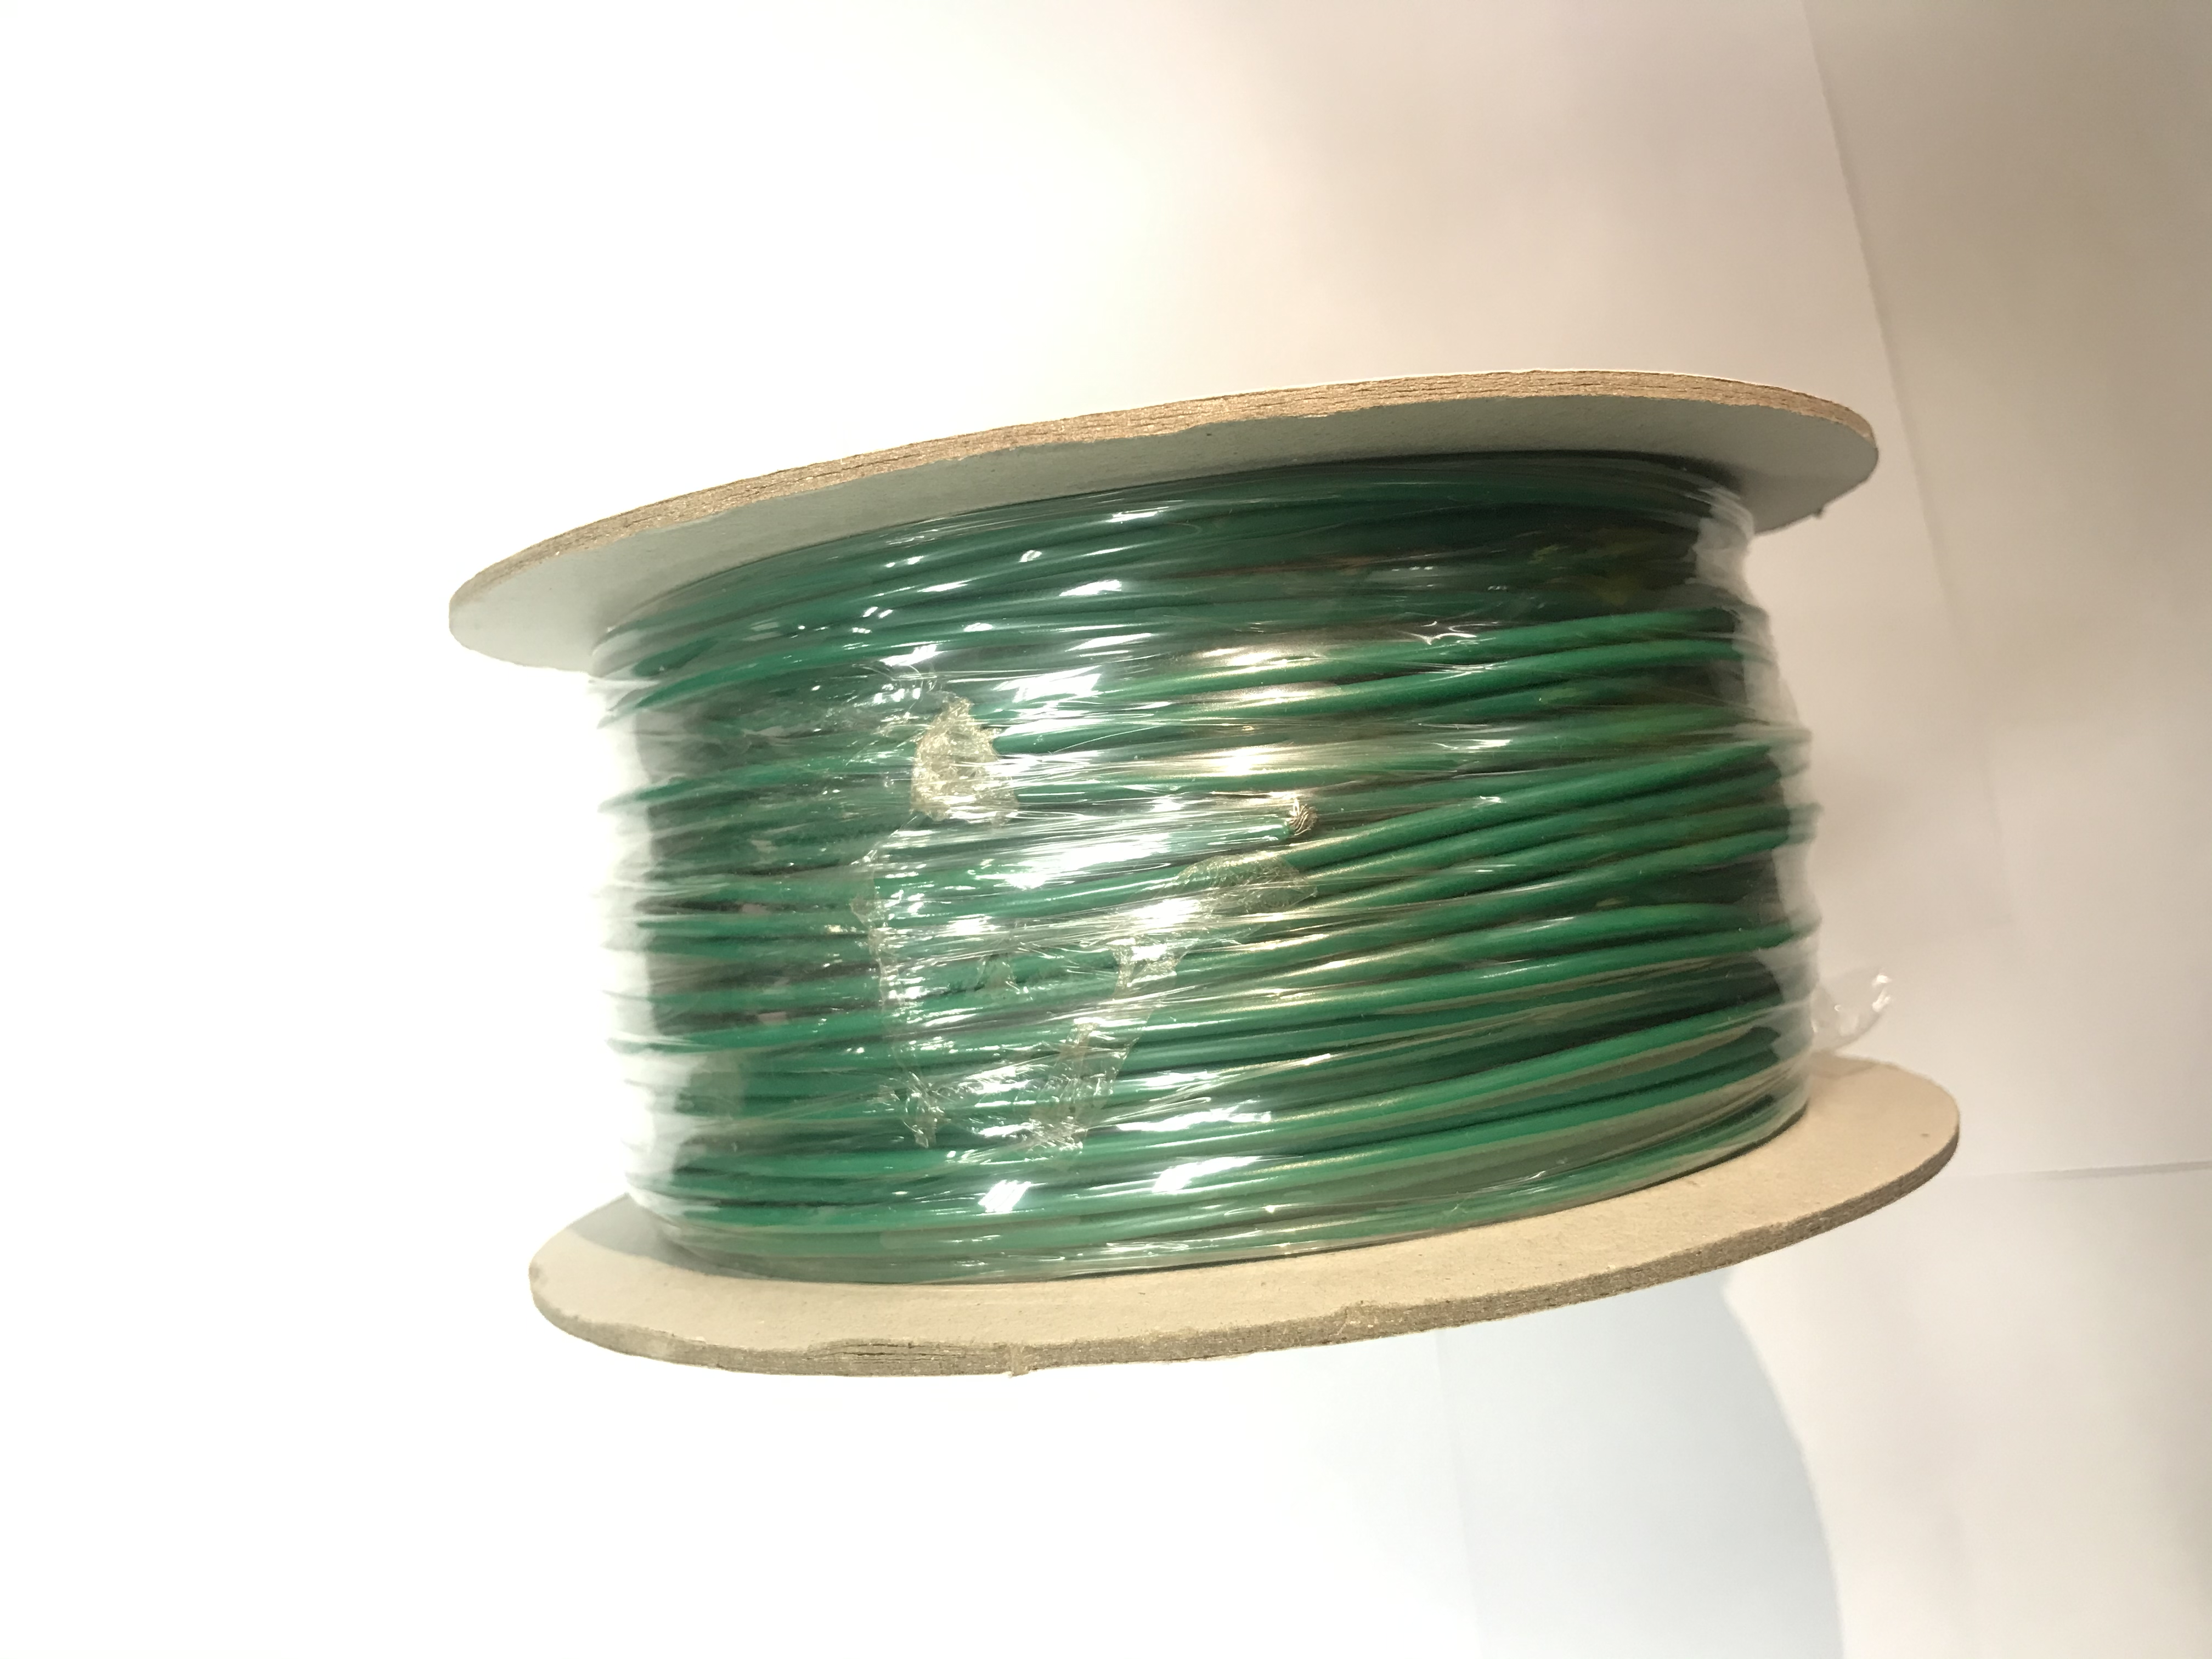 Single 1 Core 1mm 1.5mm 2.5mm 4mm 6mm 10mm 1.5mm2 1.5 2.5 Sq Mm Pvc Insulated Flexible Copper Strand Electr Cabl Wire Price Hous